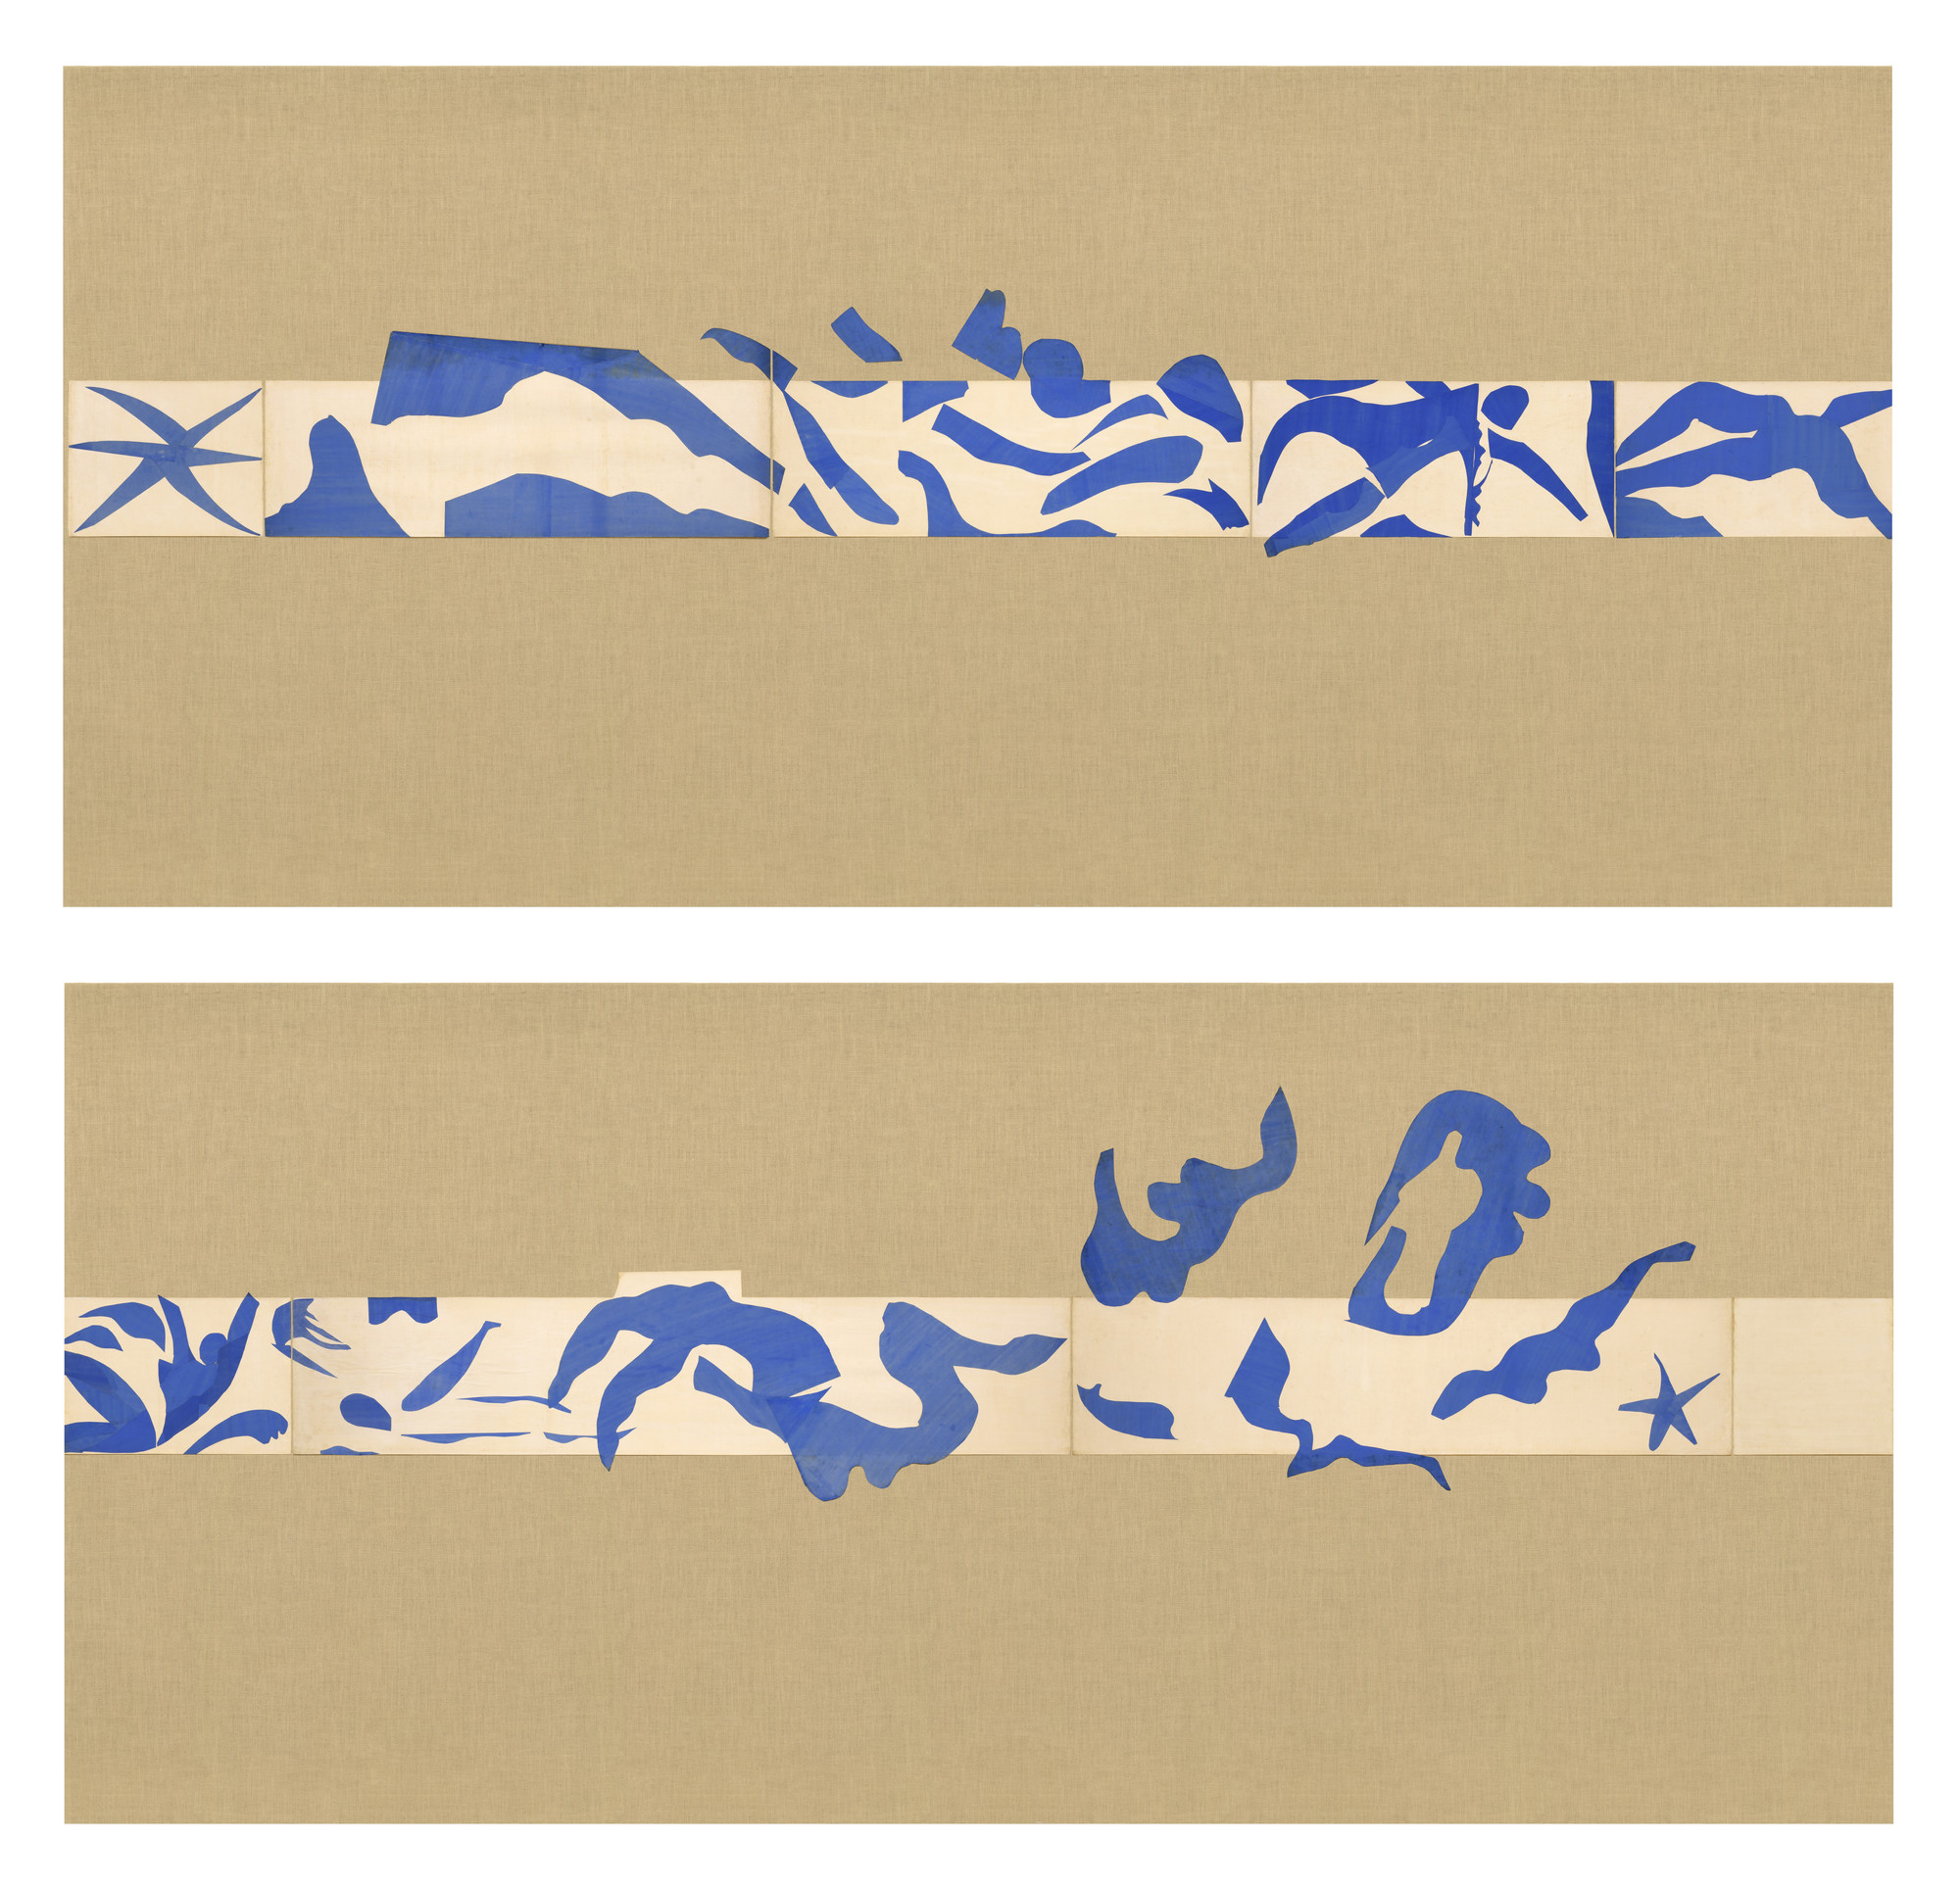 Henri Matisse. The Swimming Pool, Maquette for ceramic (realized 1999 and 2005). Nice-Cimiez, Hôtel Régina, late summer 1952